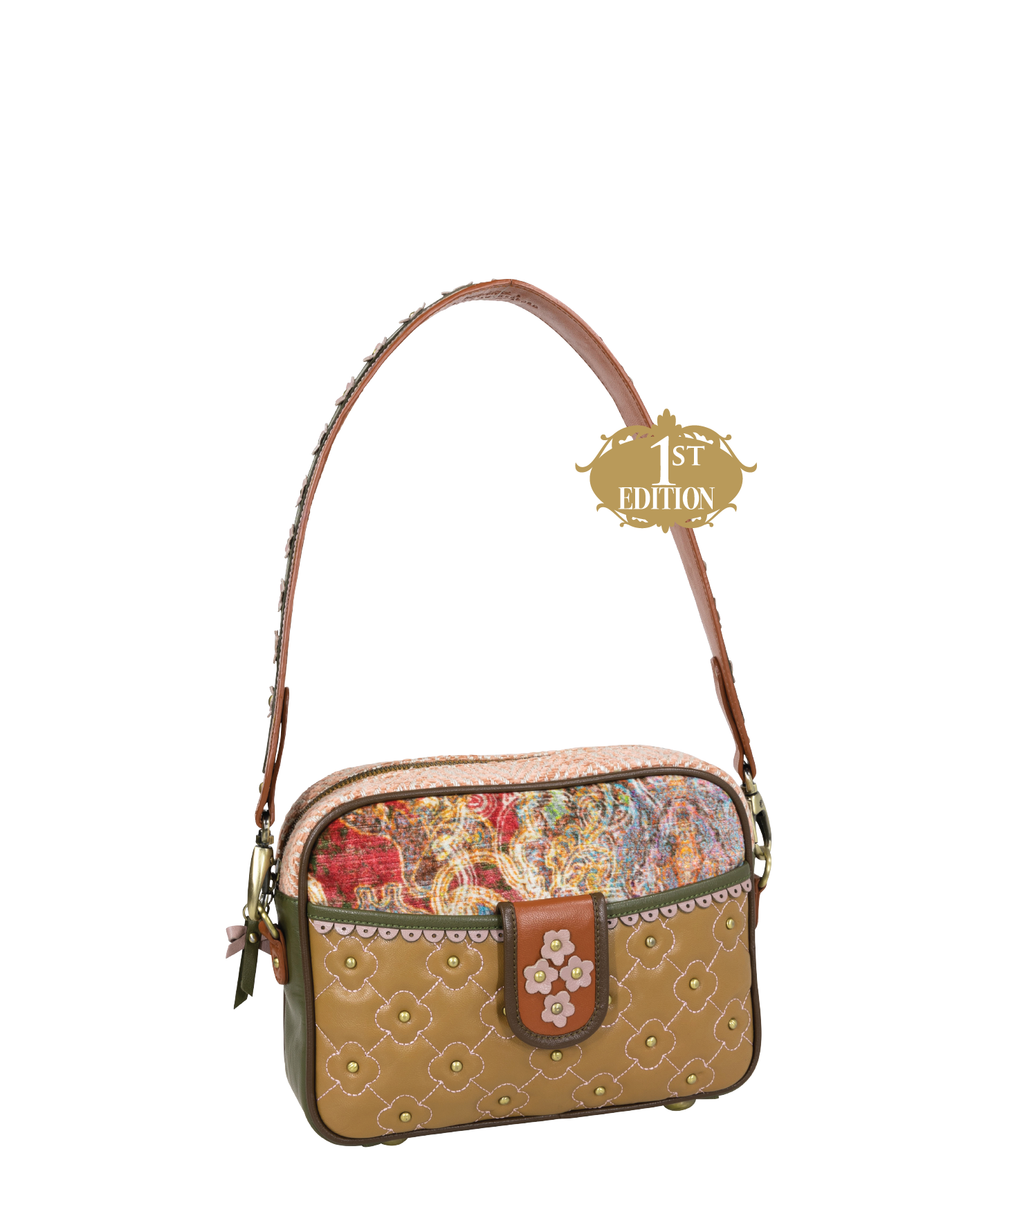 BETTY Crossbody Bag - Boheme - 1st Edition